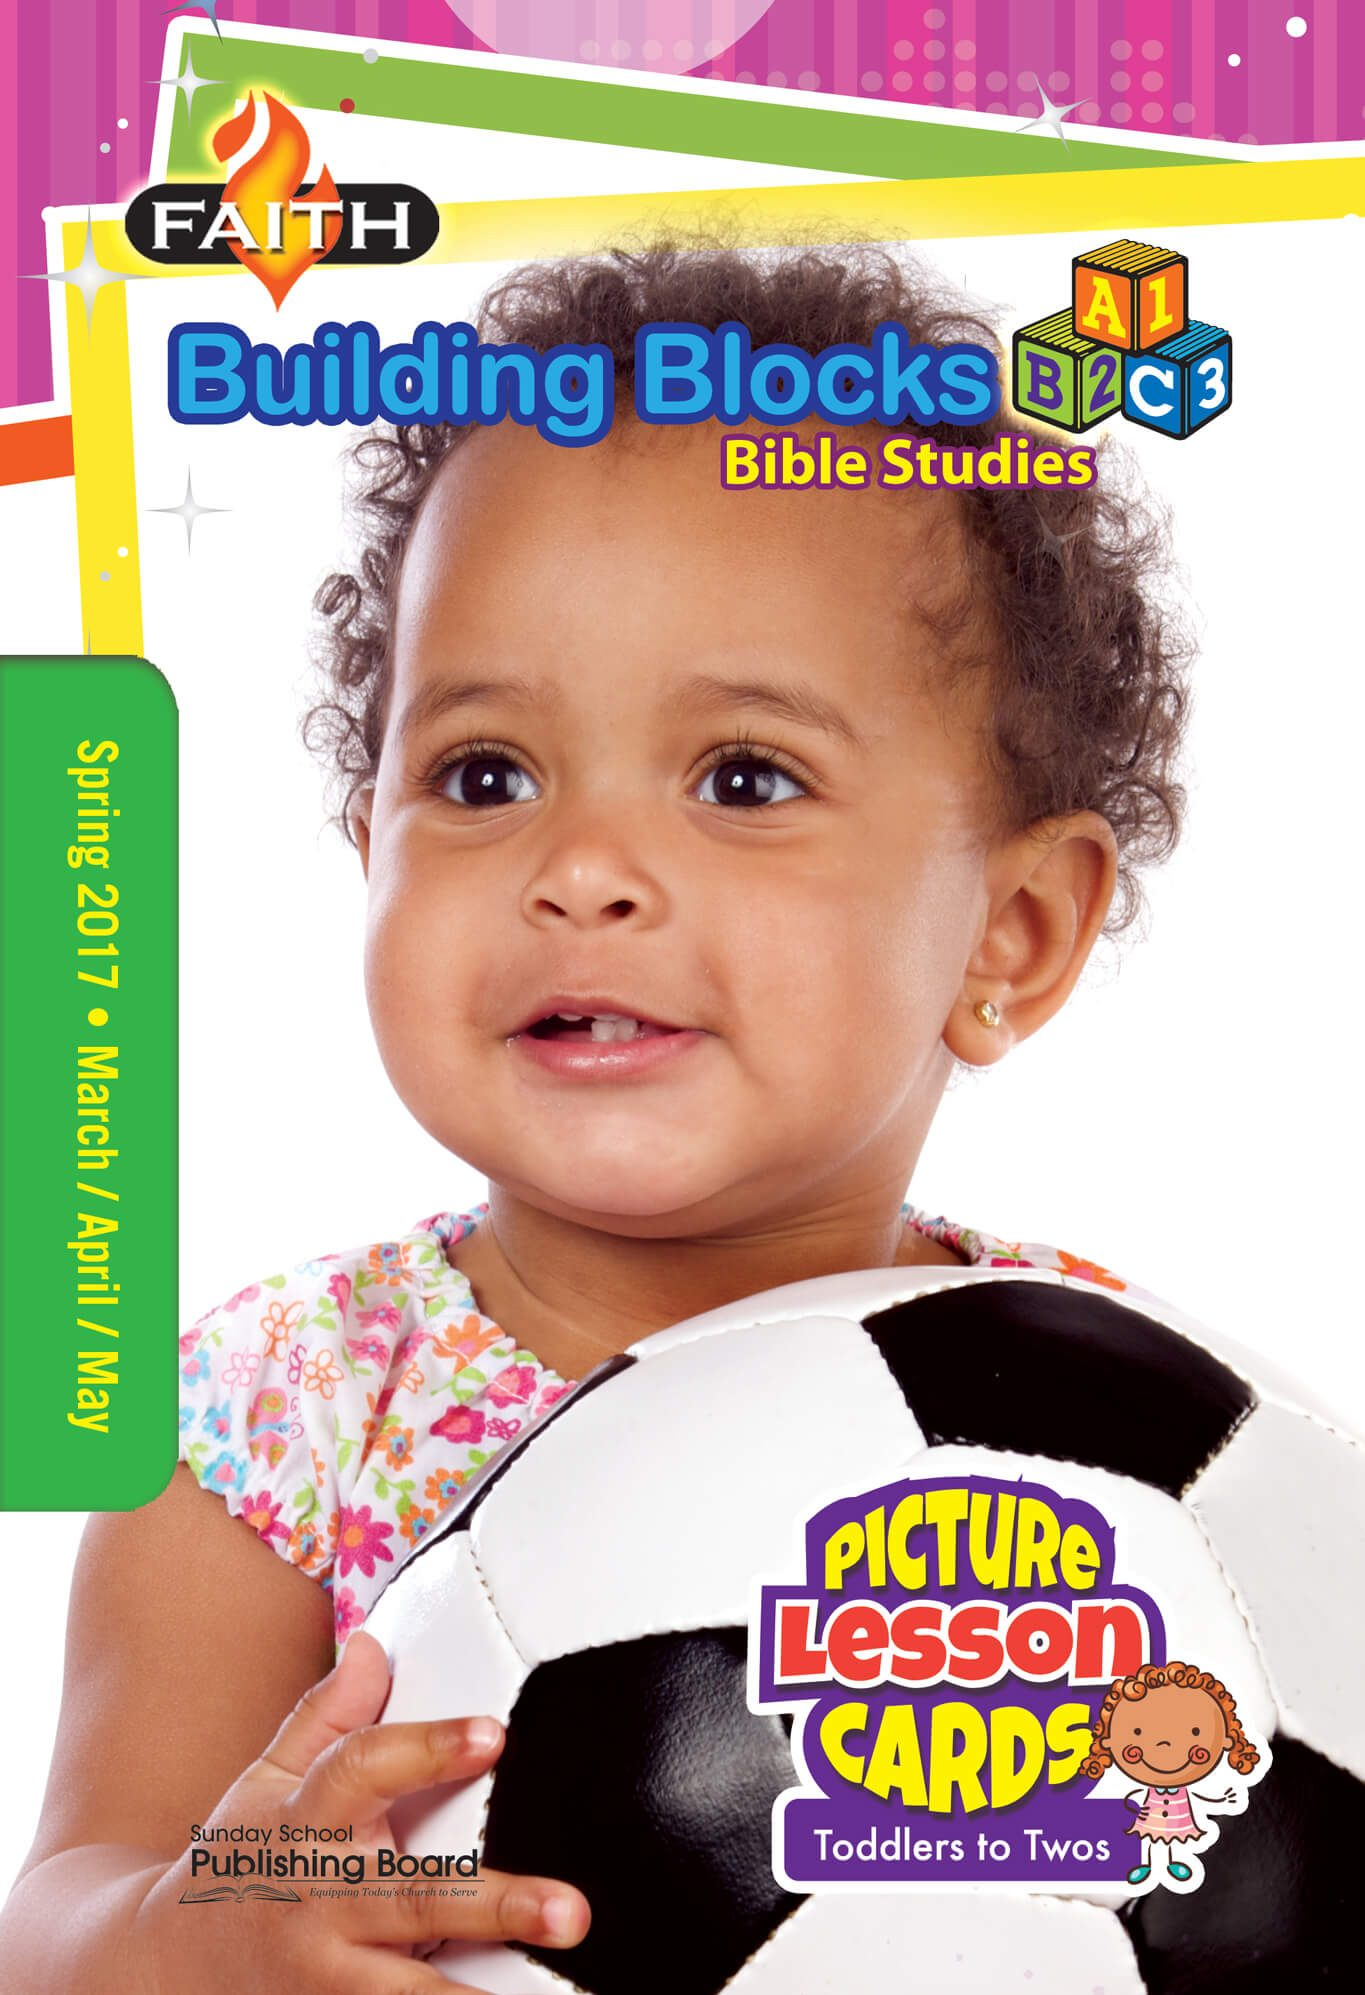 Faith Building Blocks Lesson Cards for Toddlers to Twos (Spring 2017)–Digital Edition